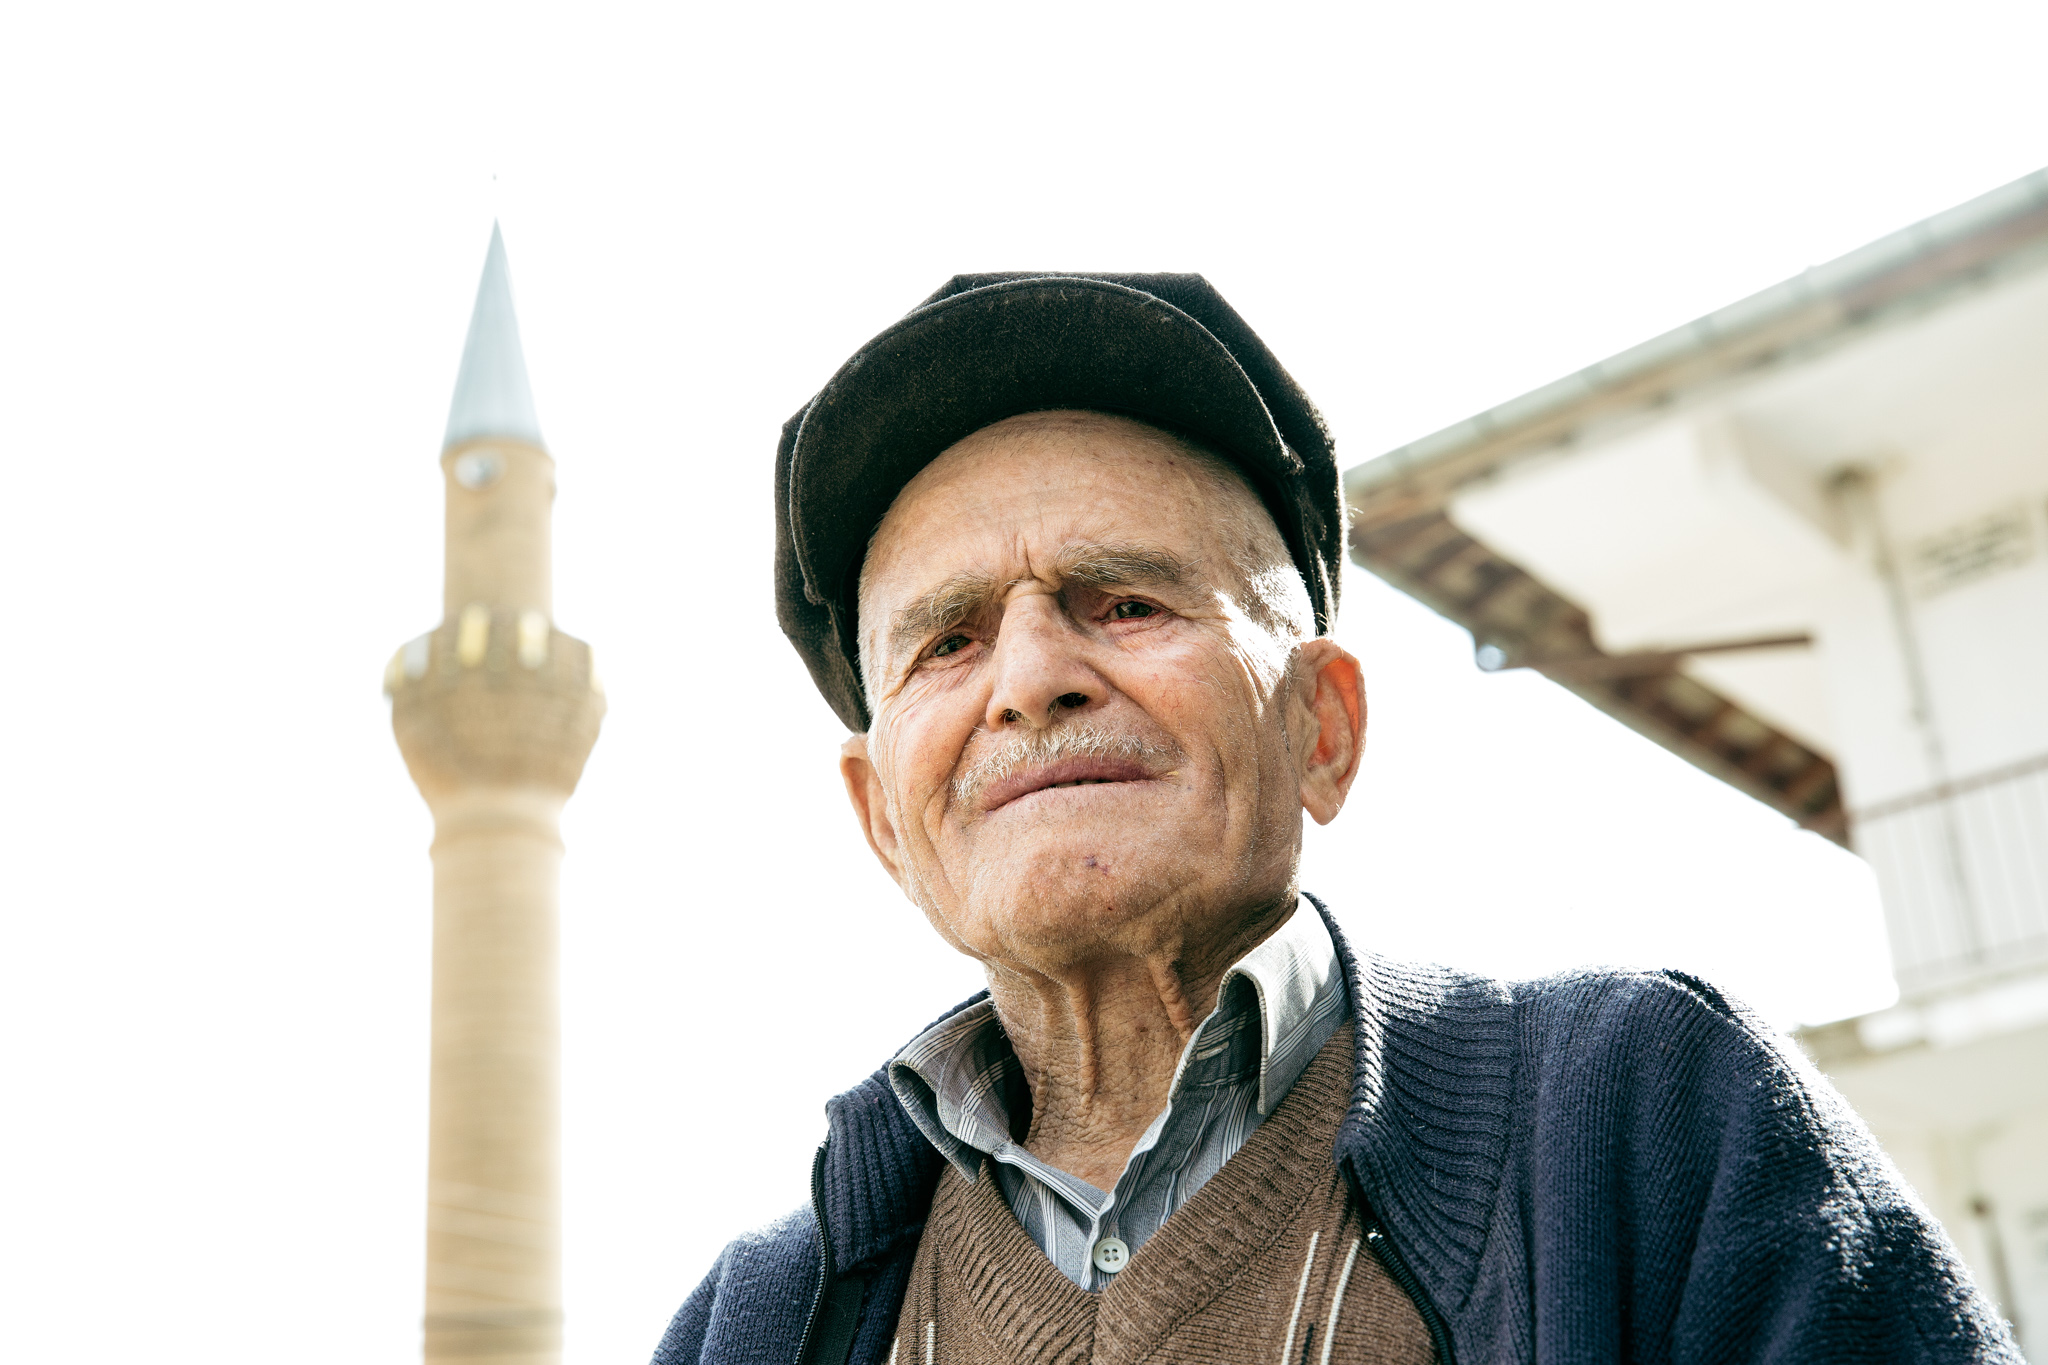 adada-to-sagrak-via-roman-road-3773-old-man-outside-mosque.jpg